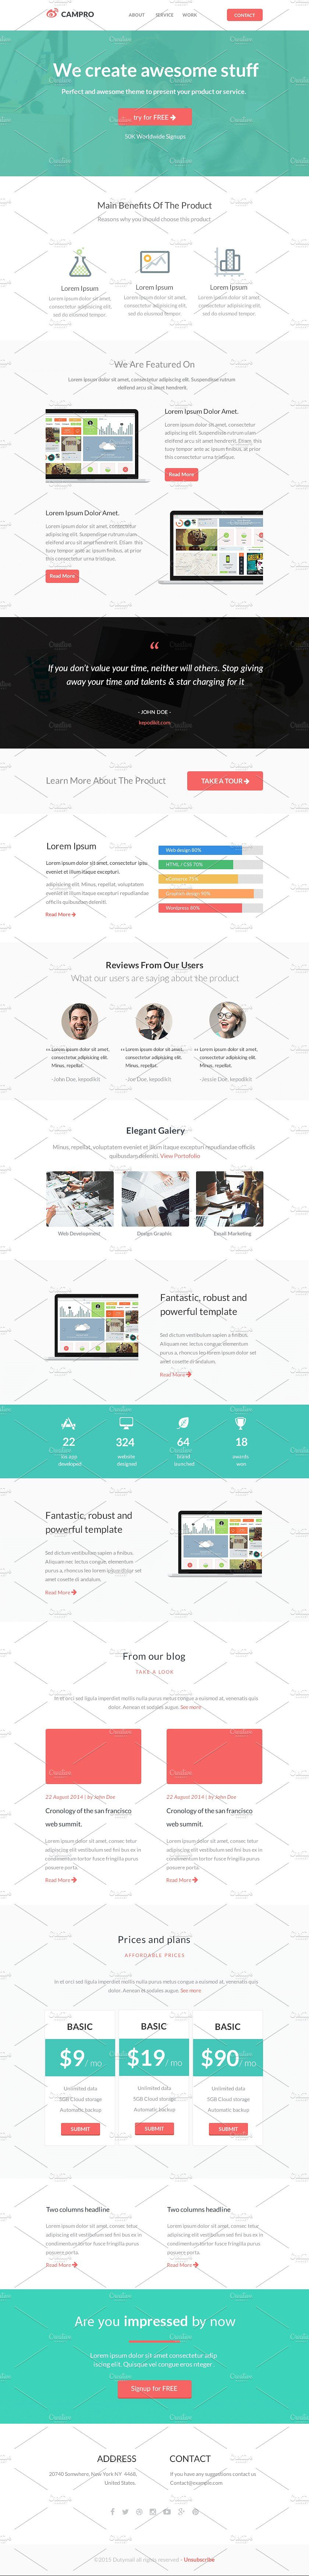 Campro Html Email Template Html Email Templates Email Templates Email Marketing Template Free html email template code